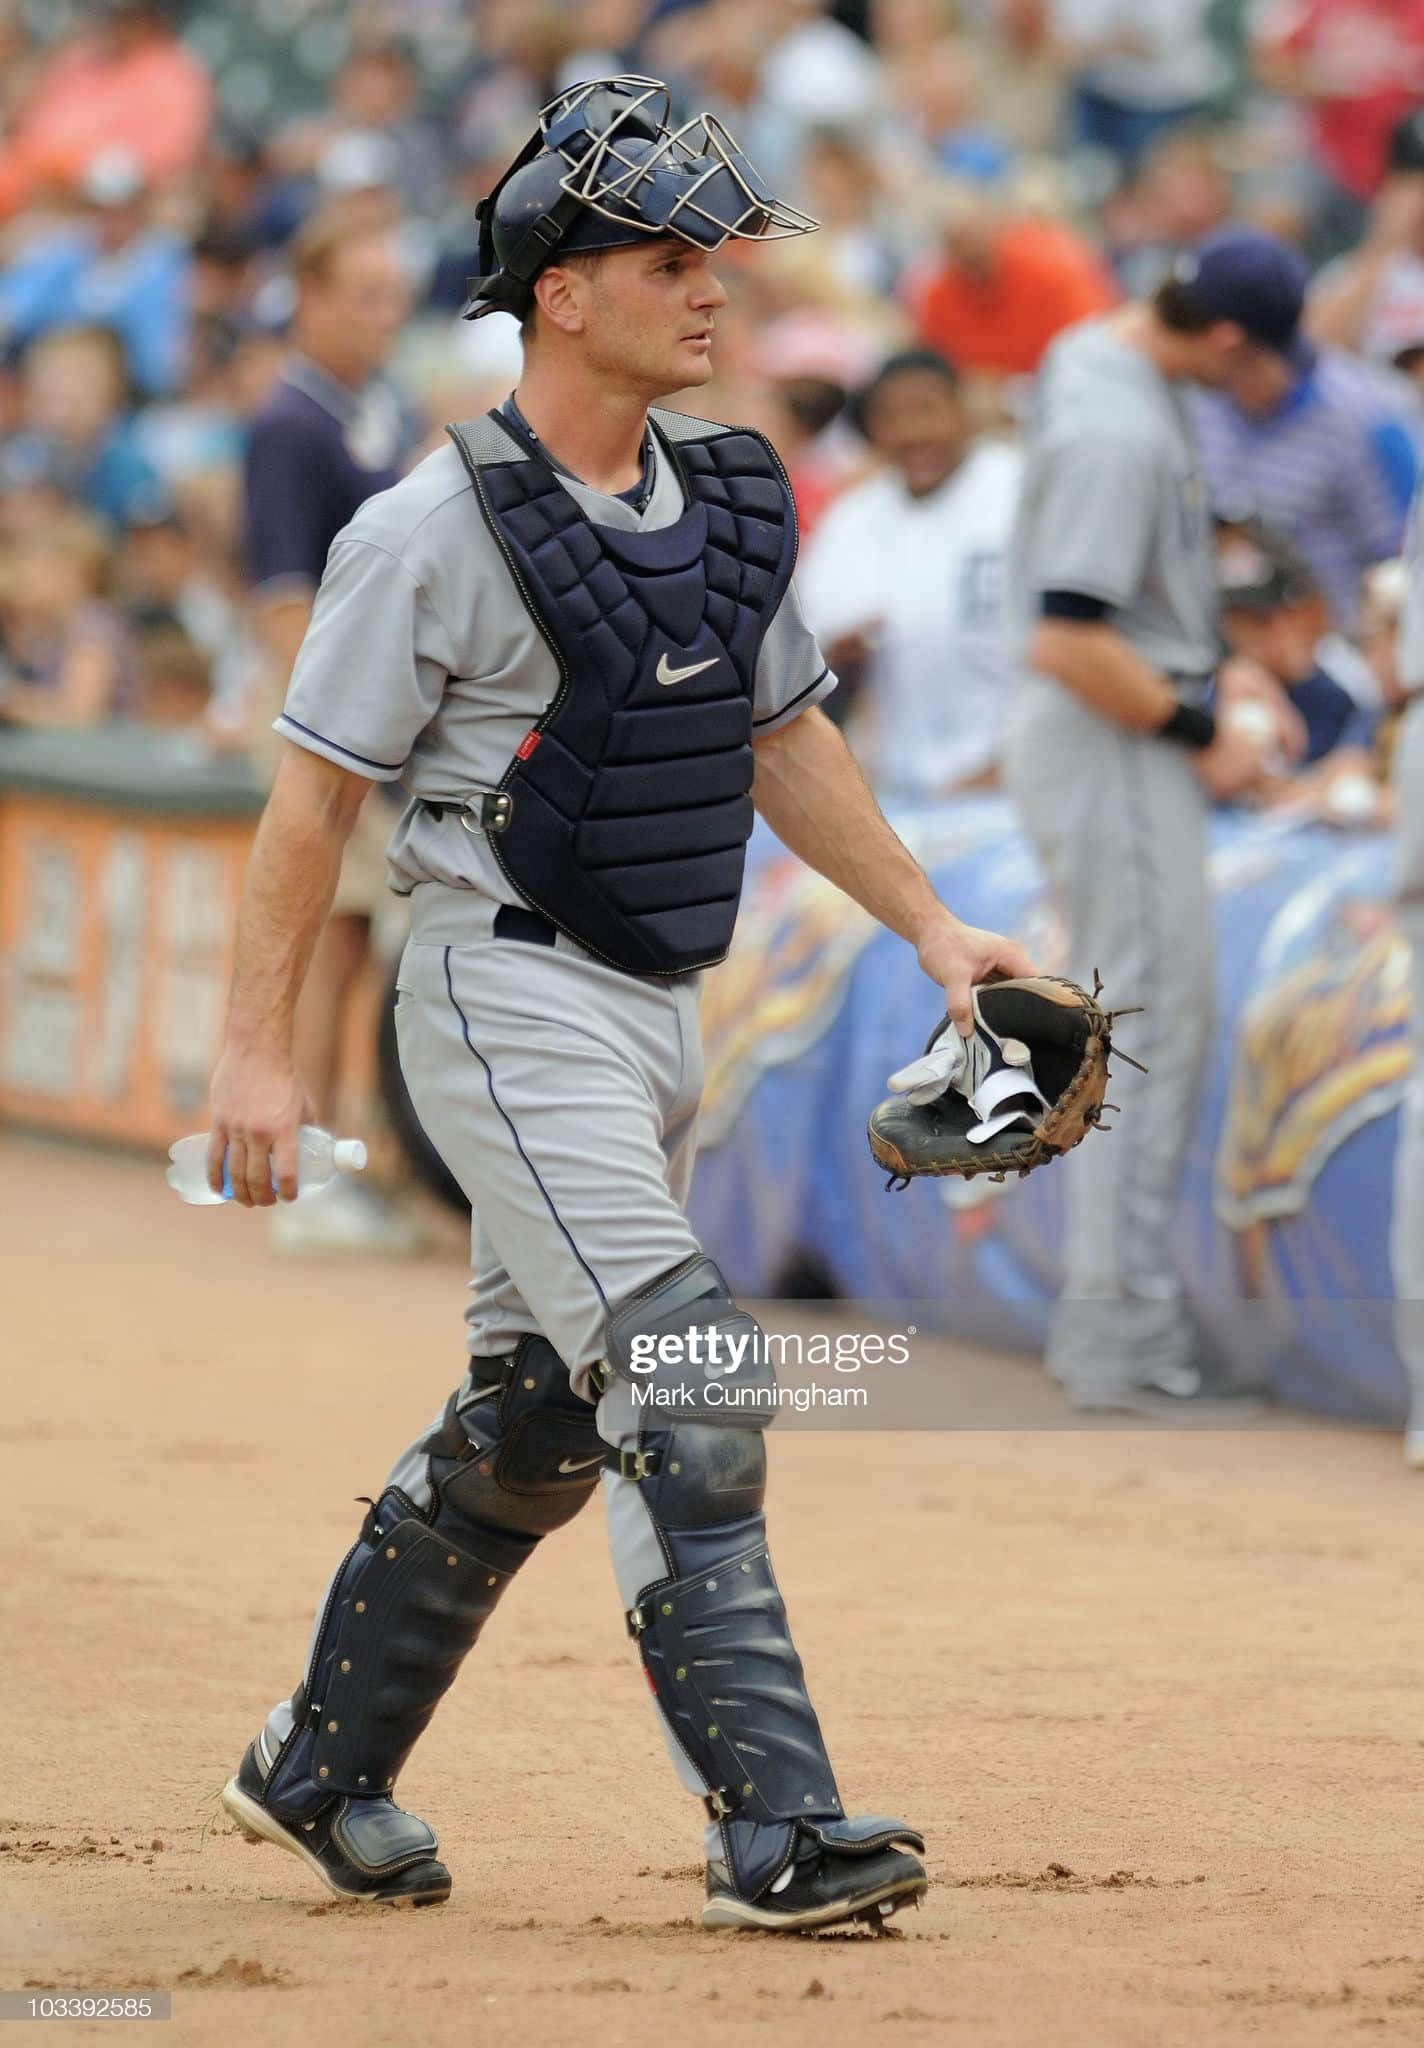 Former Rays catcher John Jason during a 2010 game